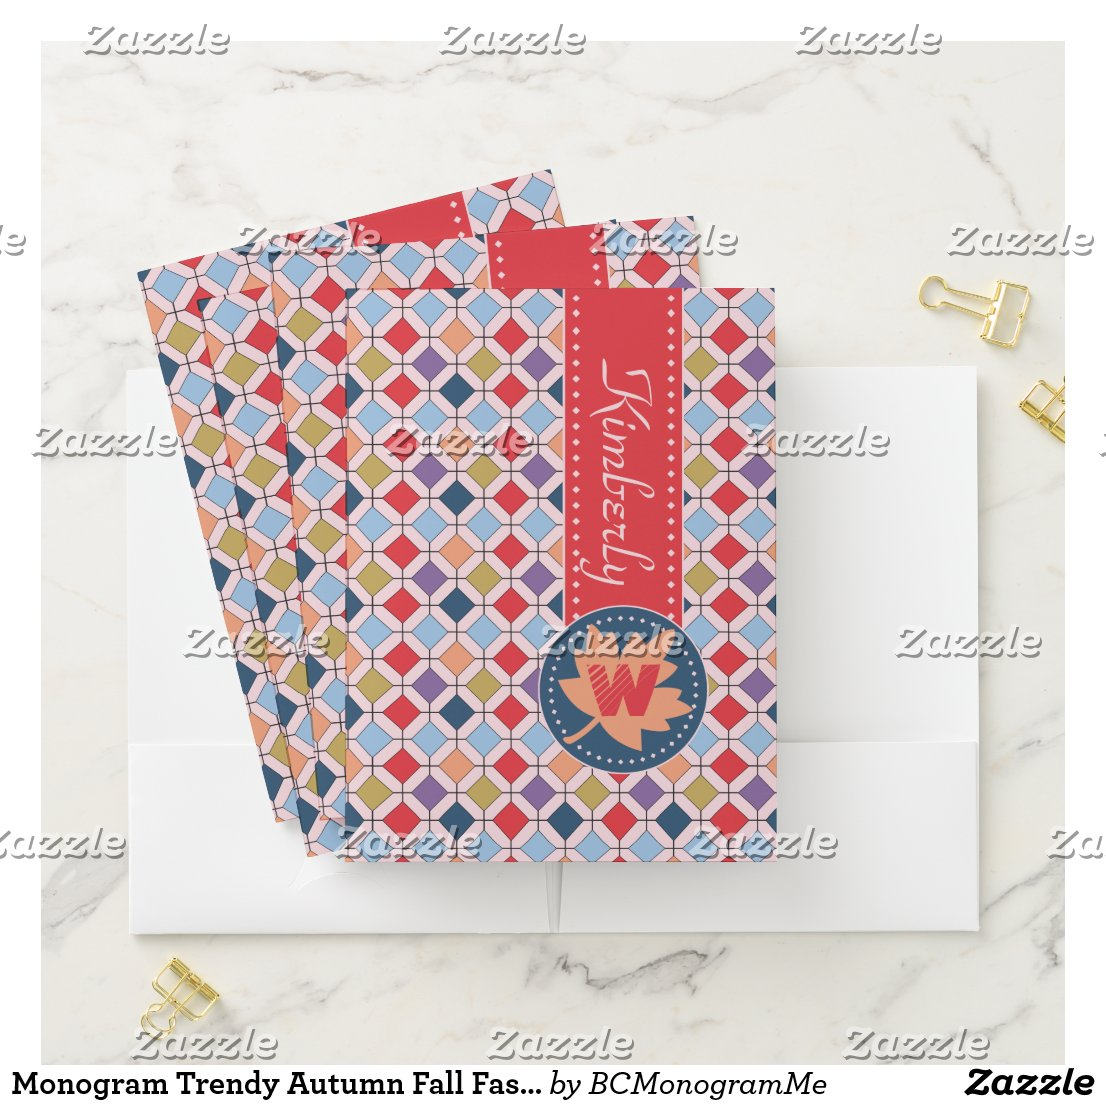 Monogram Trendy Autumn Fall Fashion Color Palette Pocket Folder